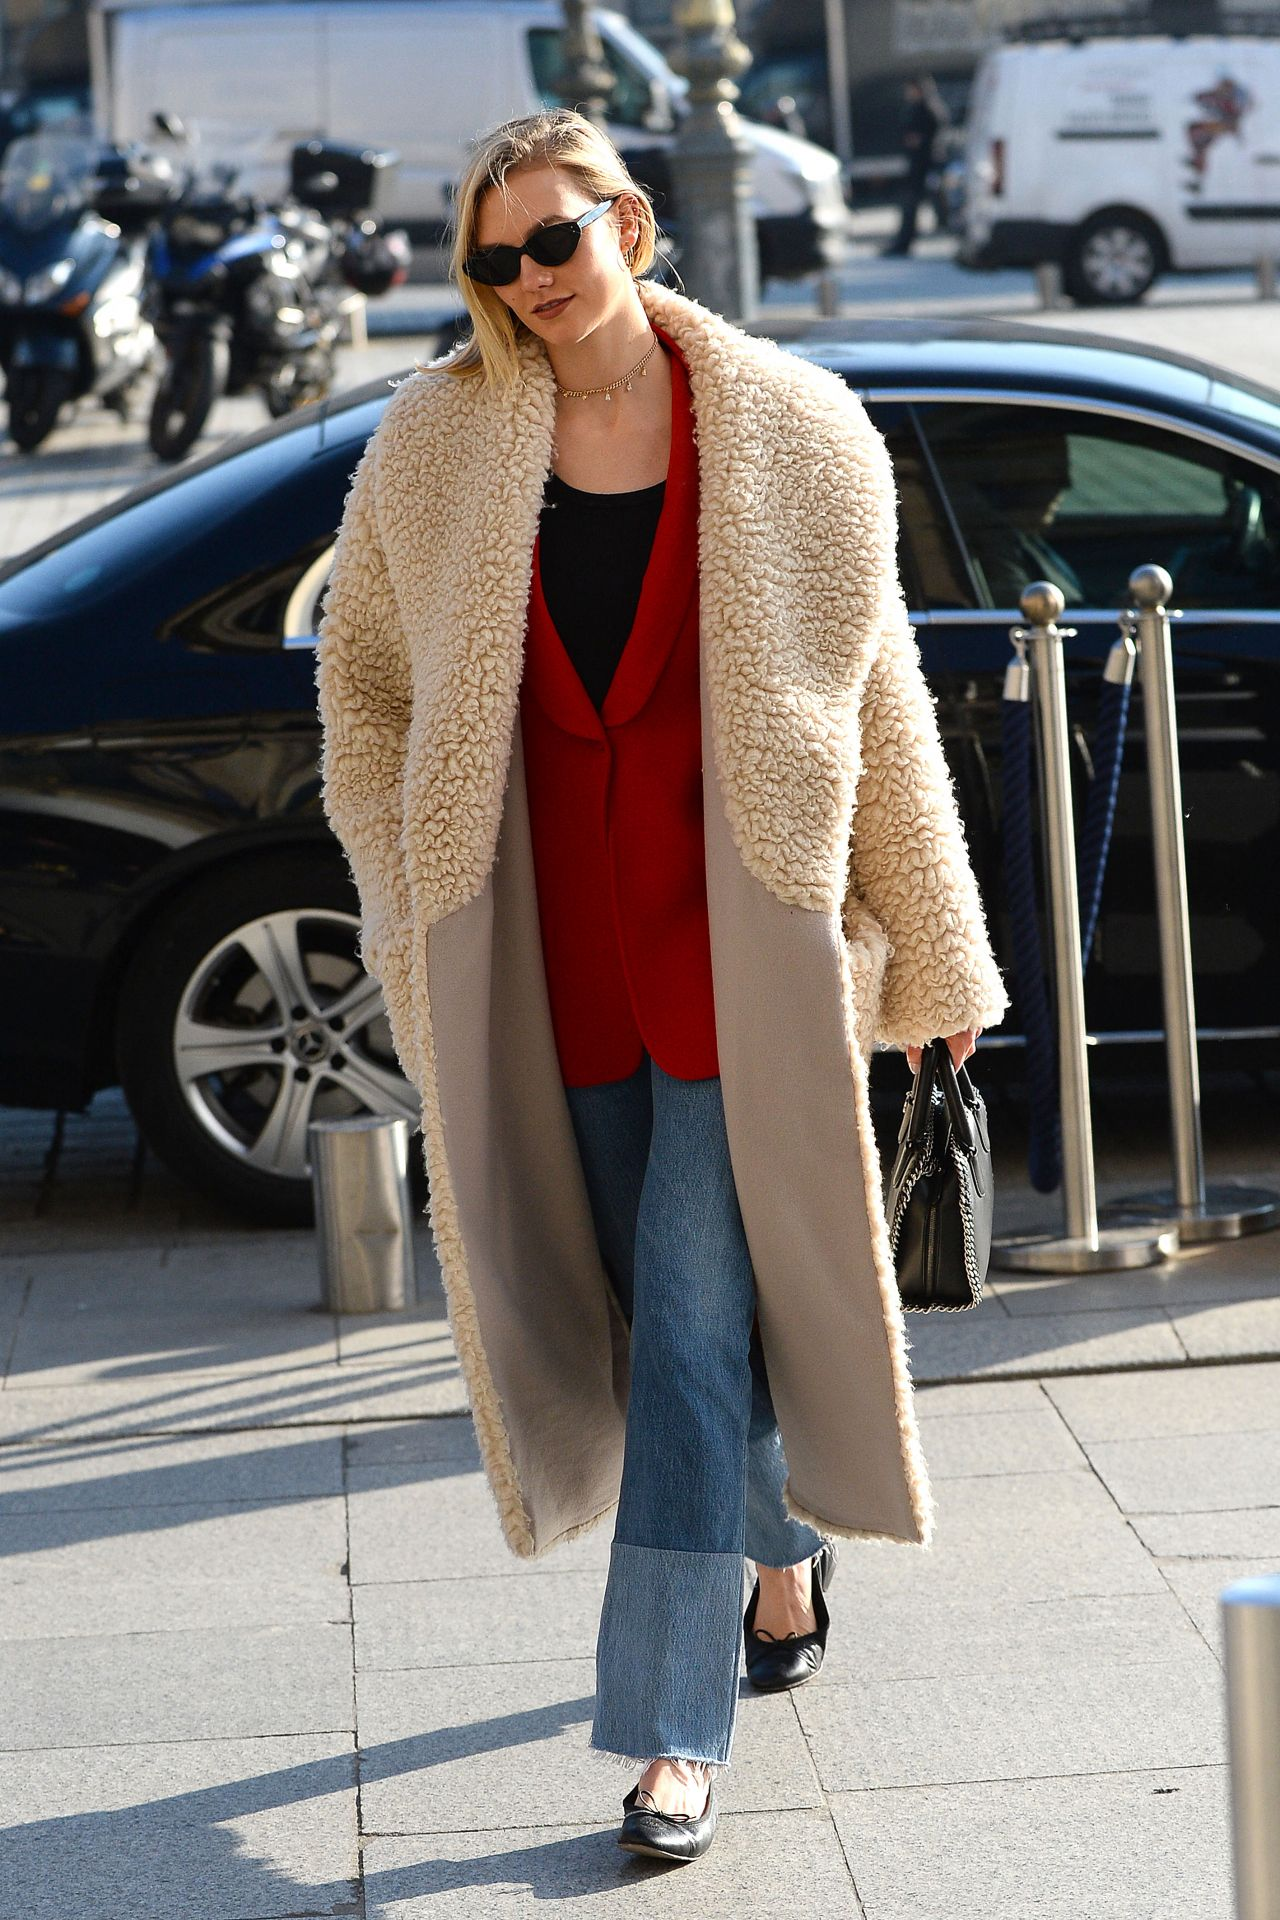 Karlie Kloss Street Fashion Paris 01 22 2020